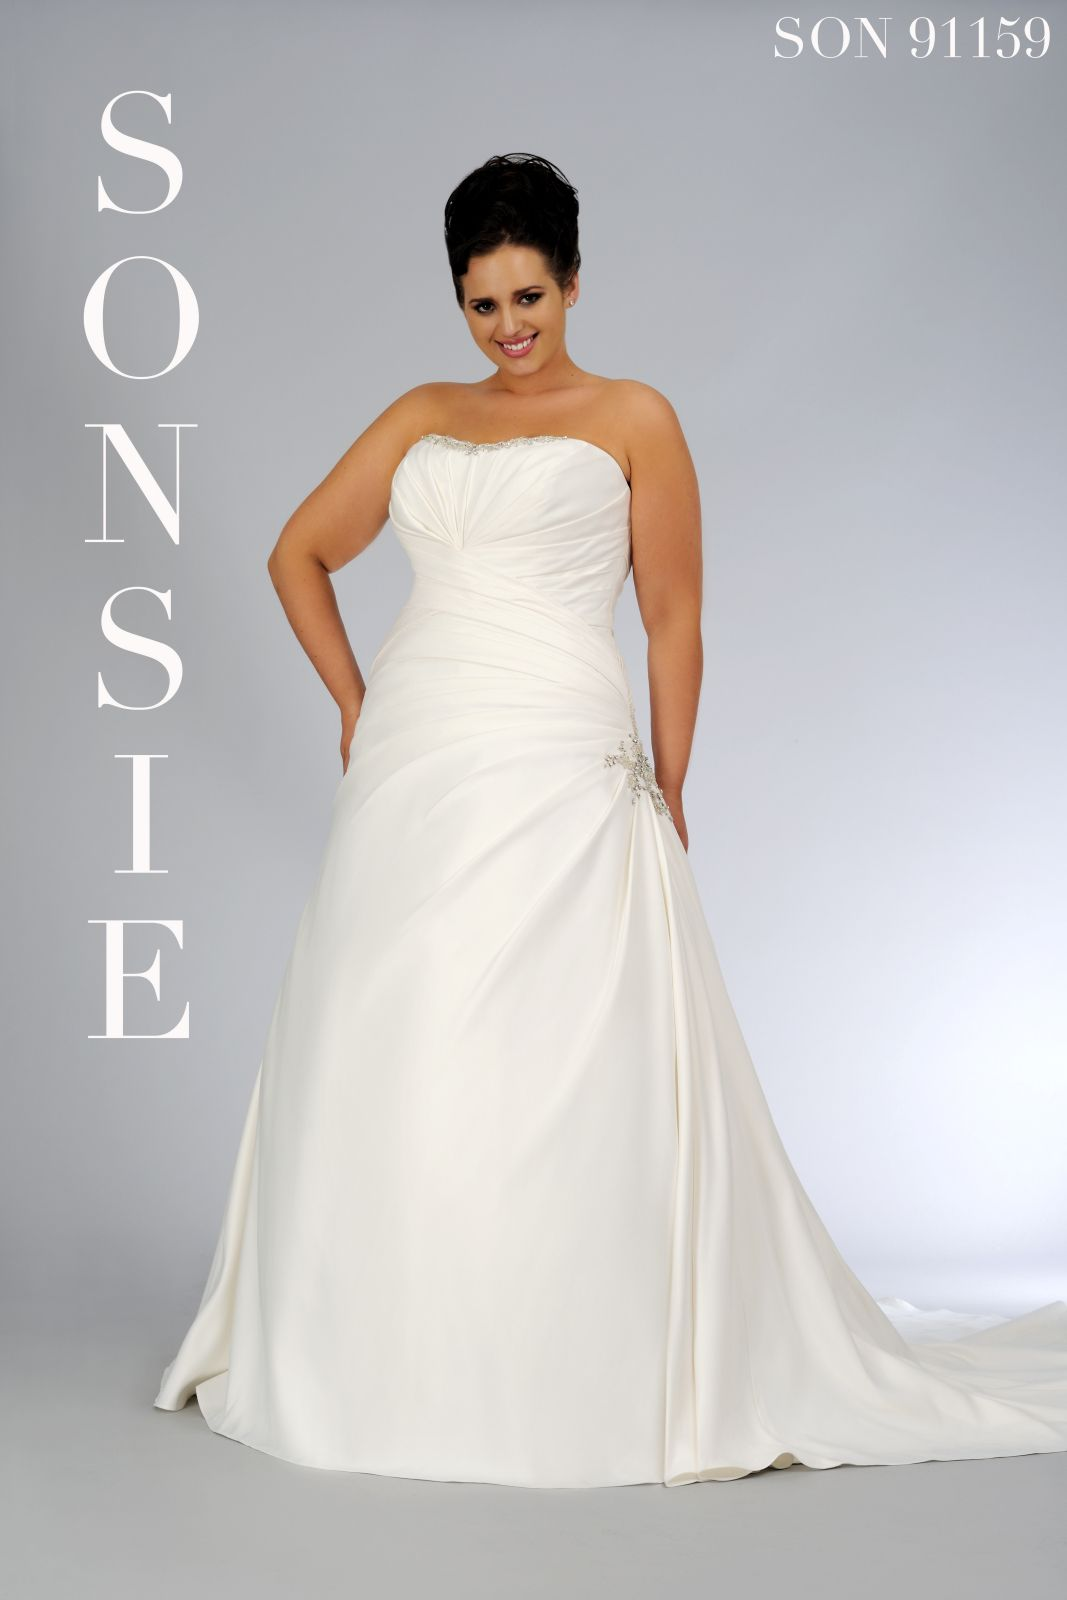 SON91159 - Sonsie Collection. Sample in store.